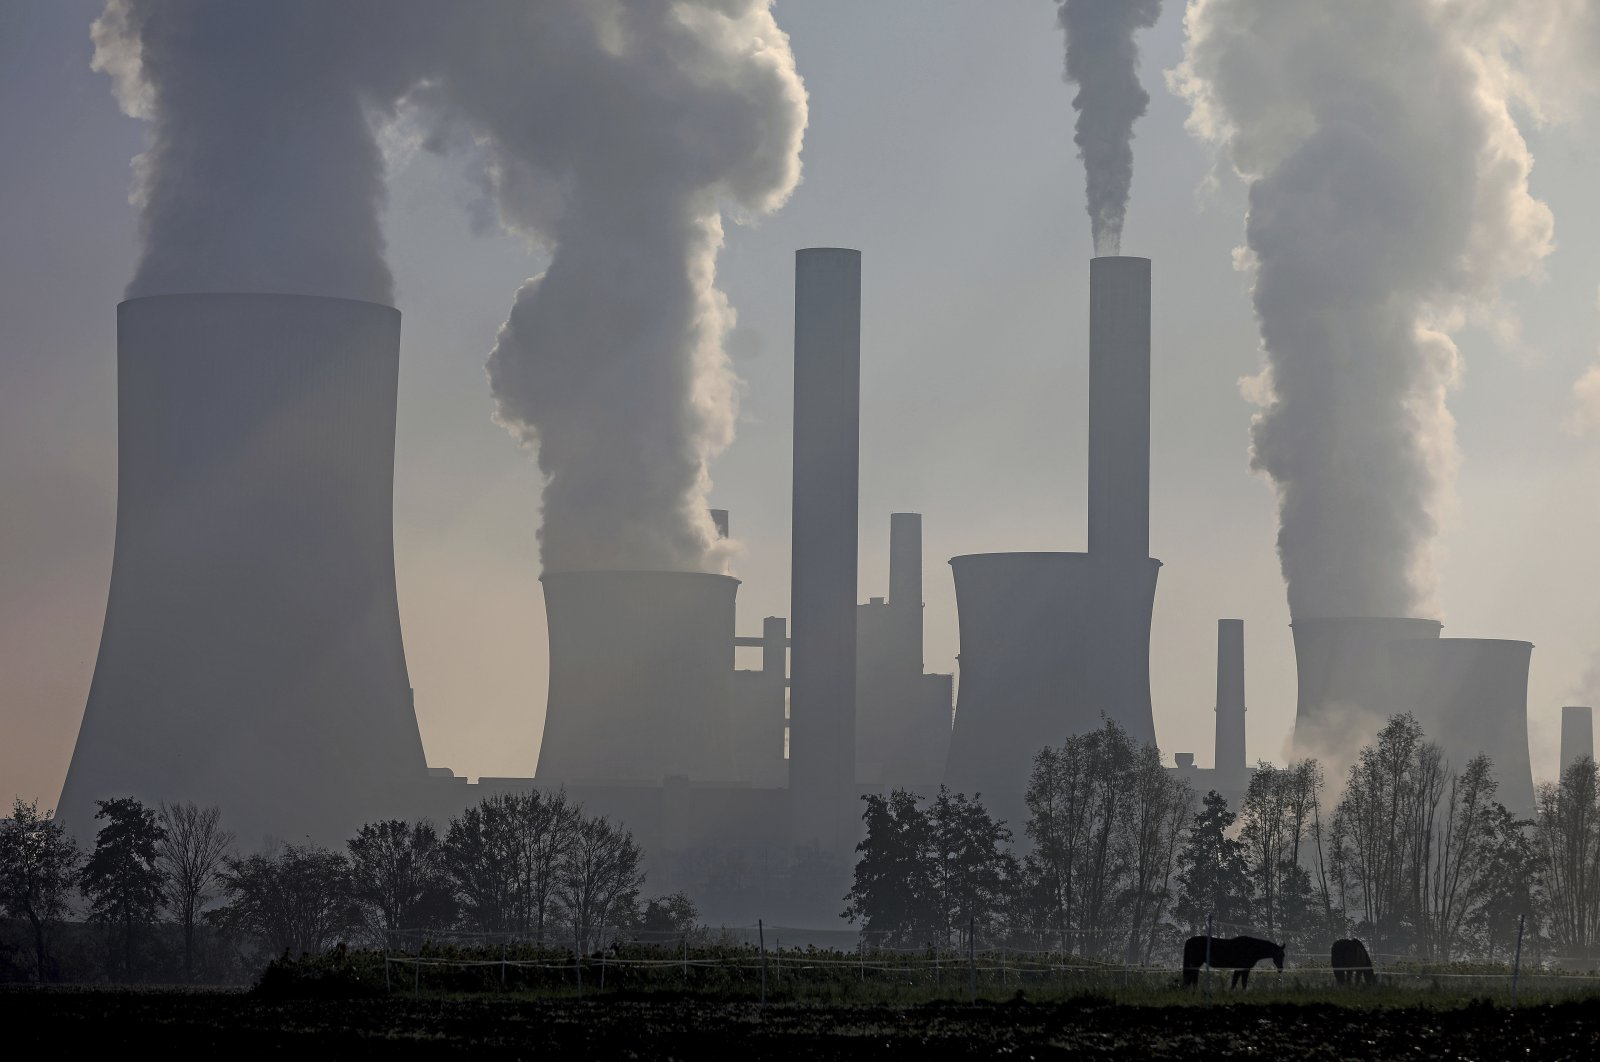 Two horses are standing in a pasture in front of the RWE lignite power plant Niederaussem, Germany, Nov. 5, 2020. (dpa via AP)